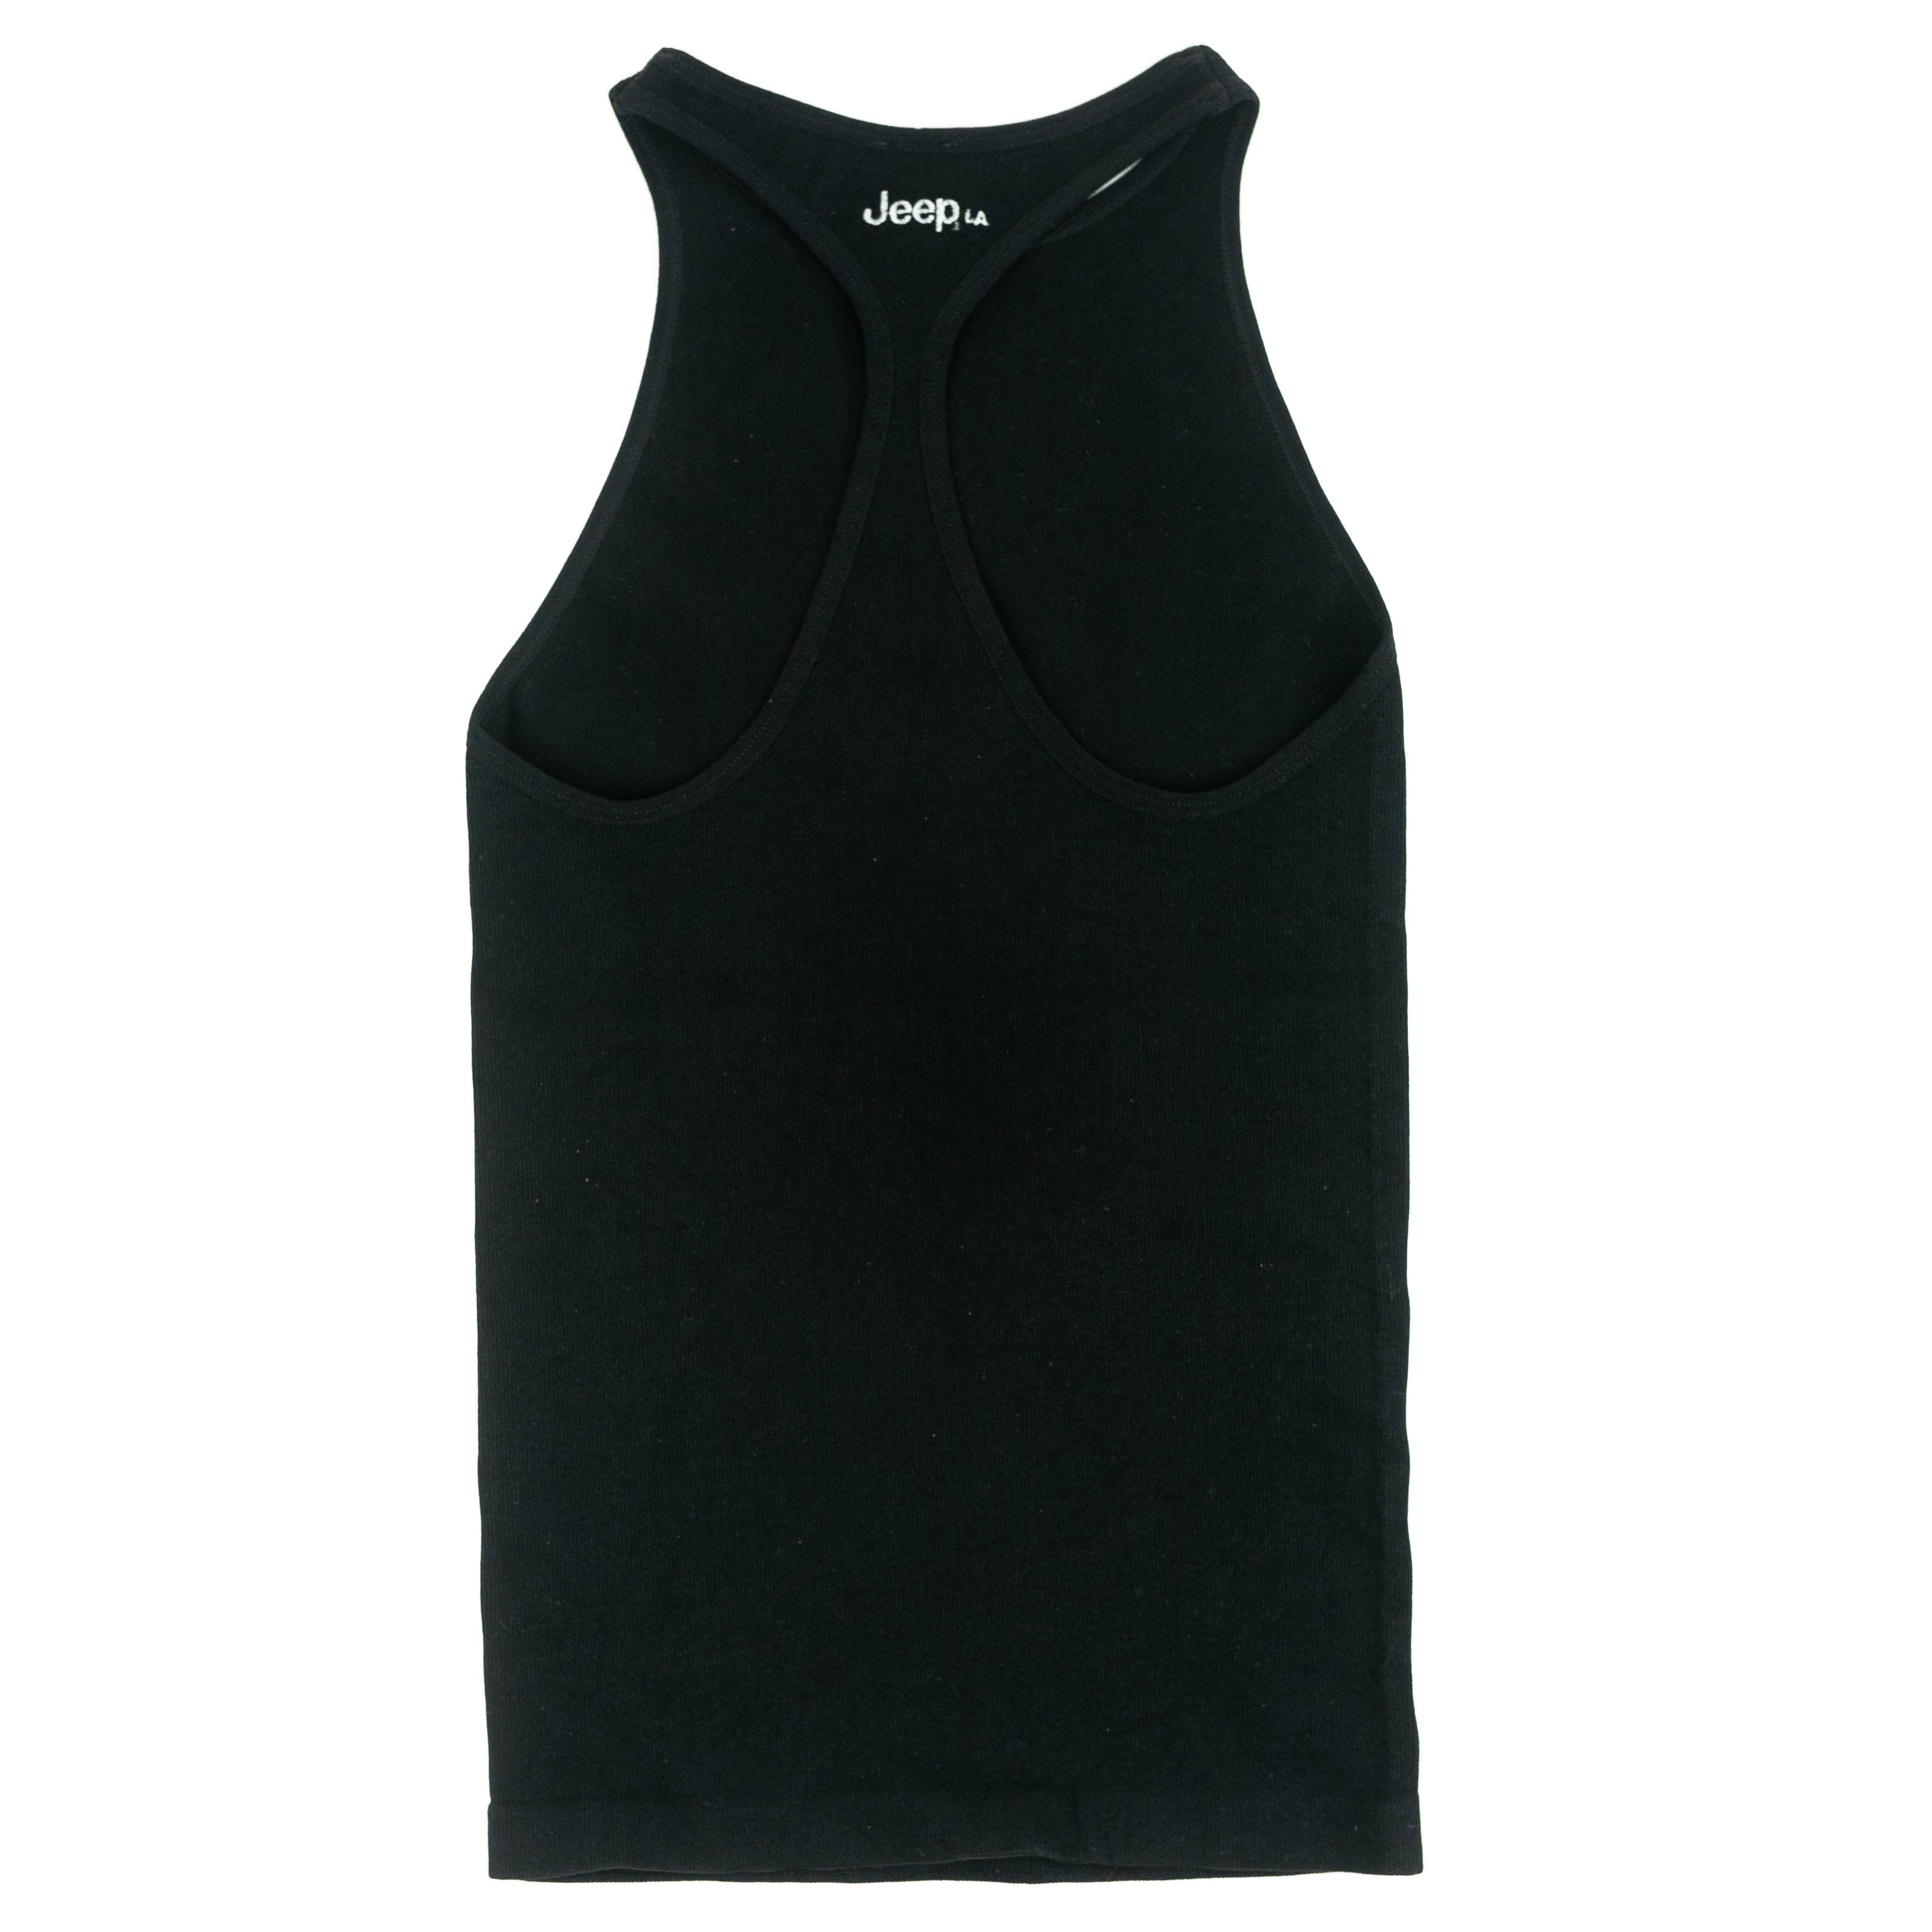 Fitted Racerback Tank